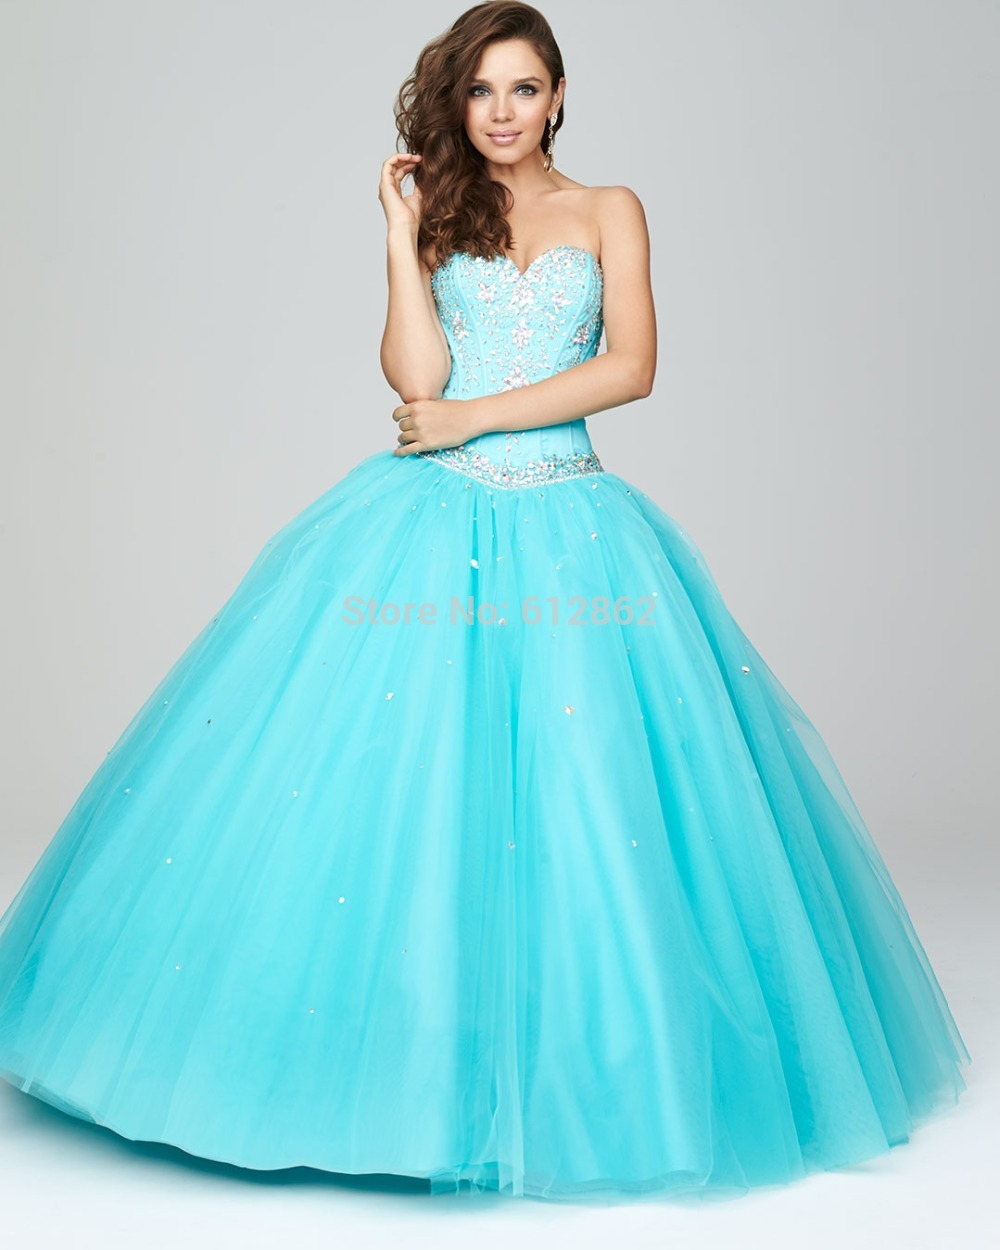 Strapless Sweetheart Tulle Ball Gown Crystals Top Baby Blue Wedding ...